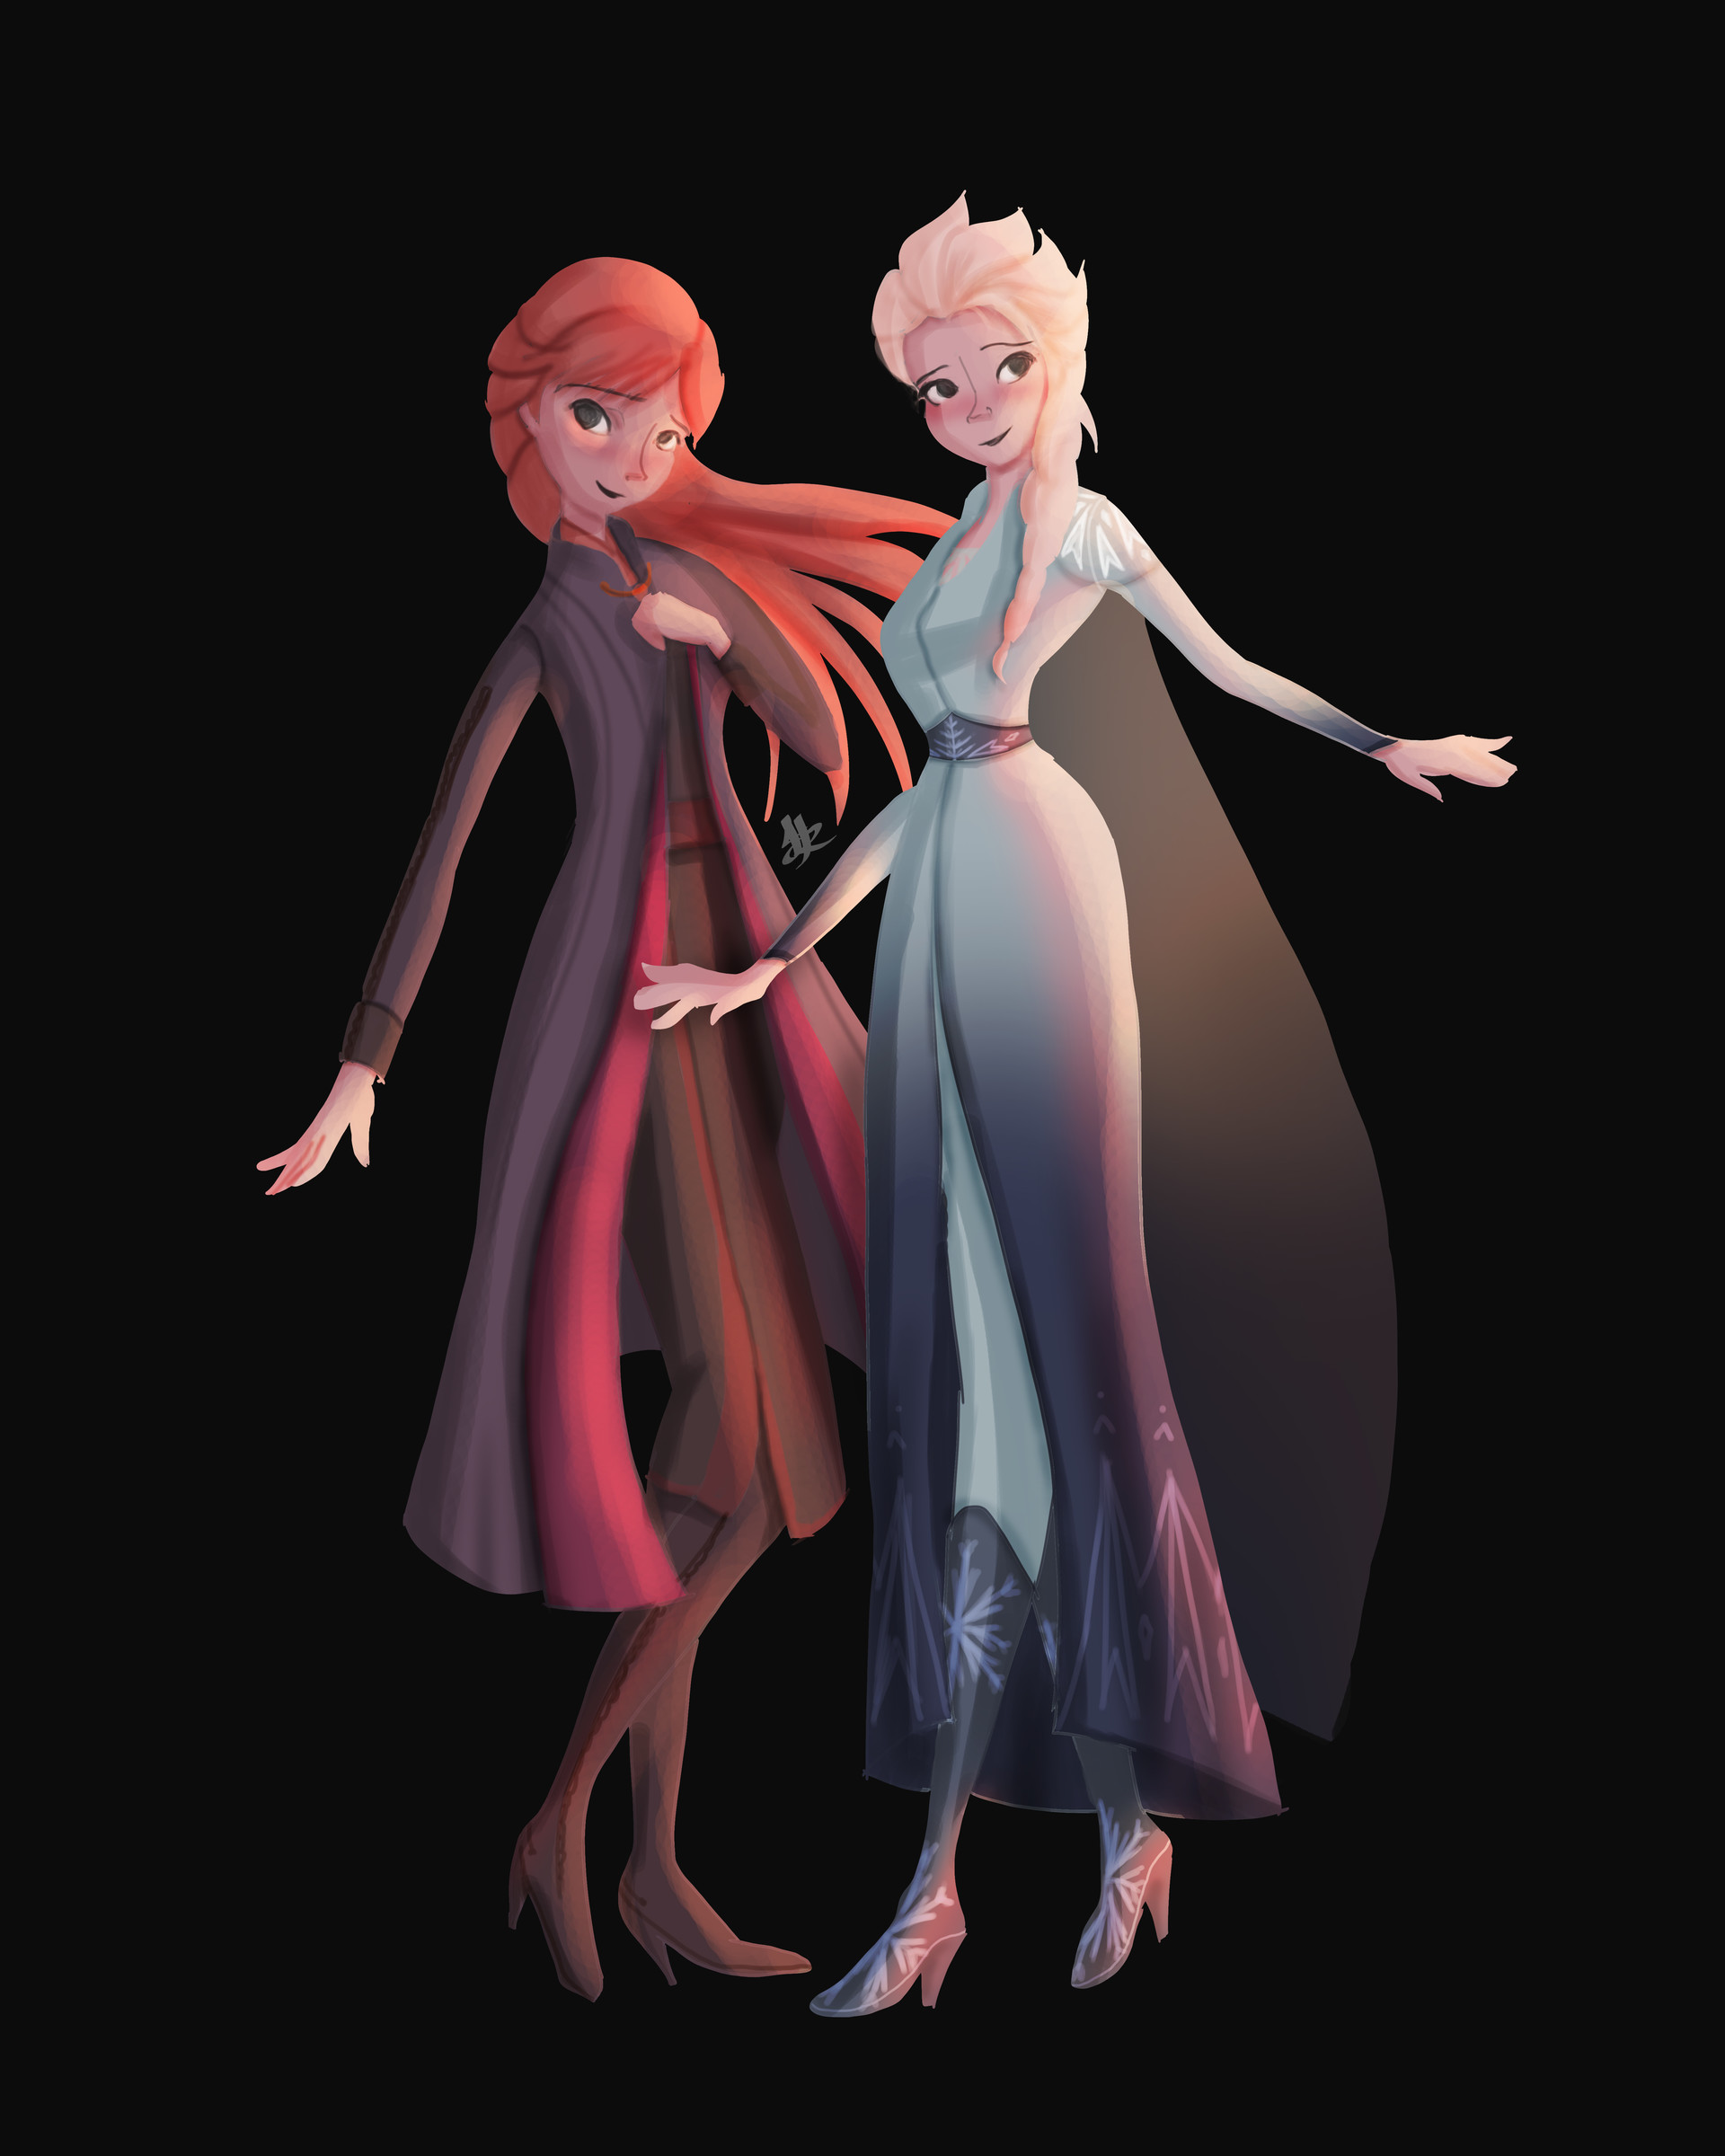 Frozen 2 character concept Elsa and Anna